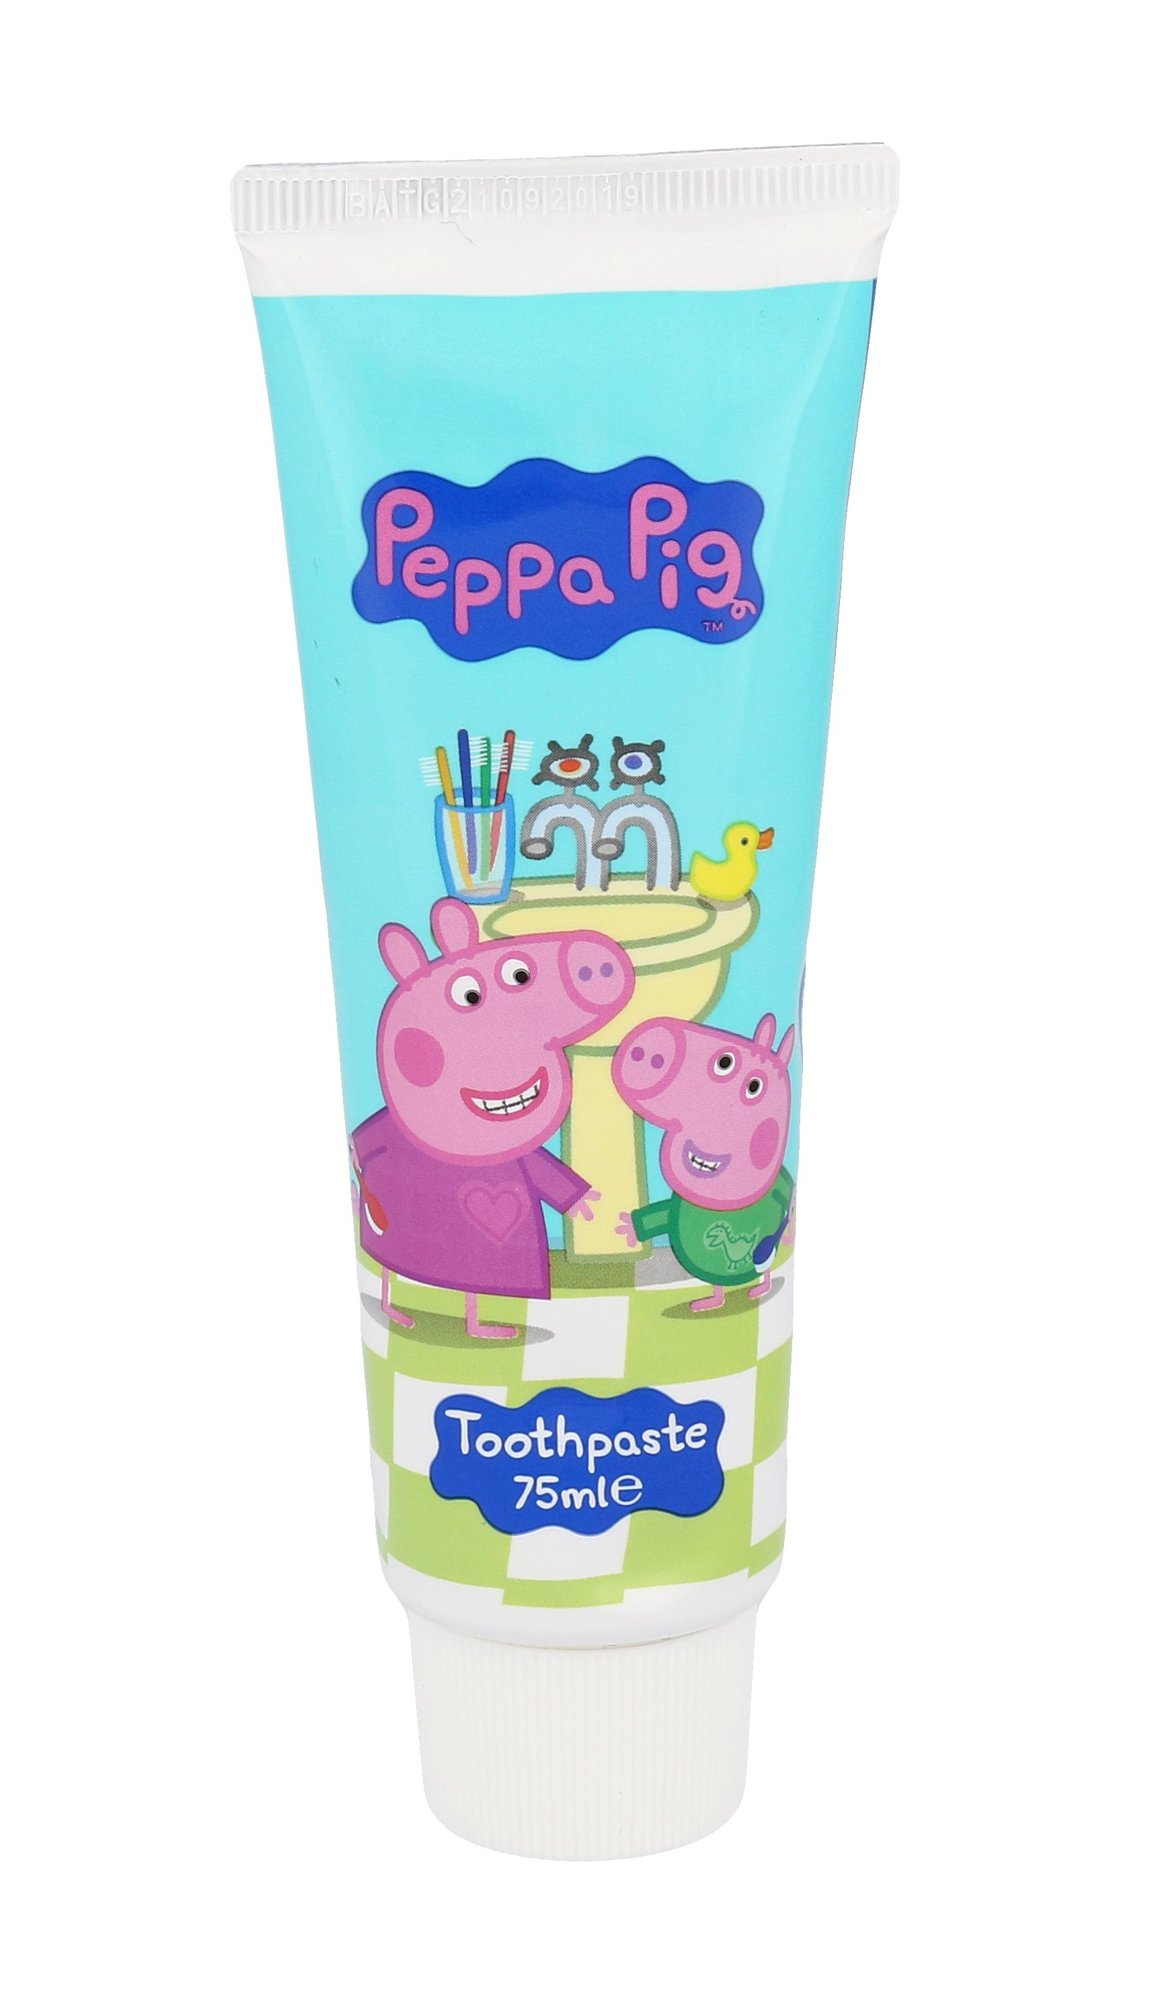 Peppa Pig Toothpaste Cosmetic 75ml